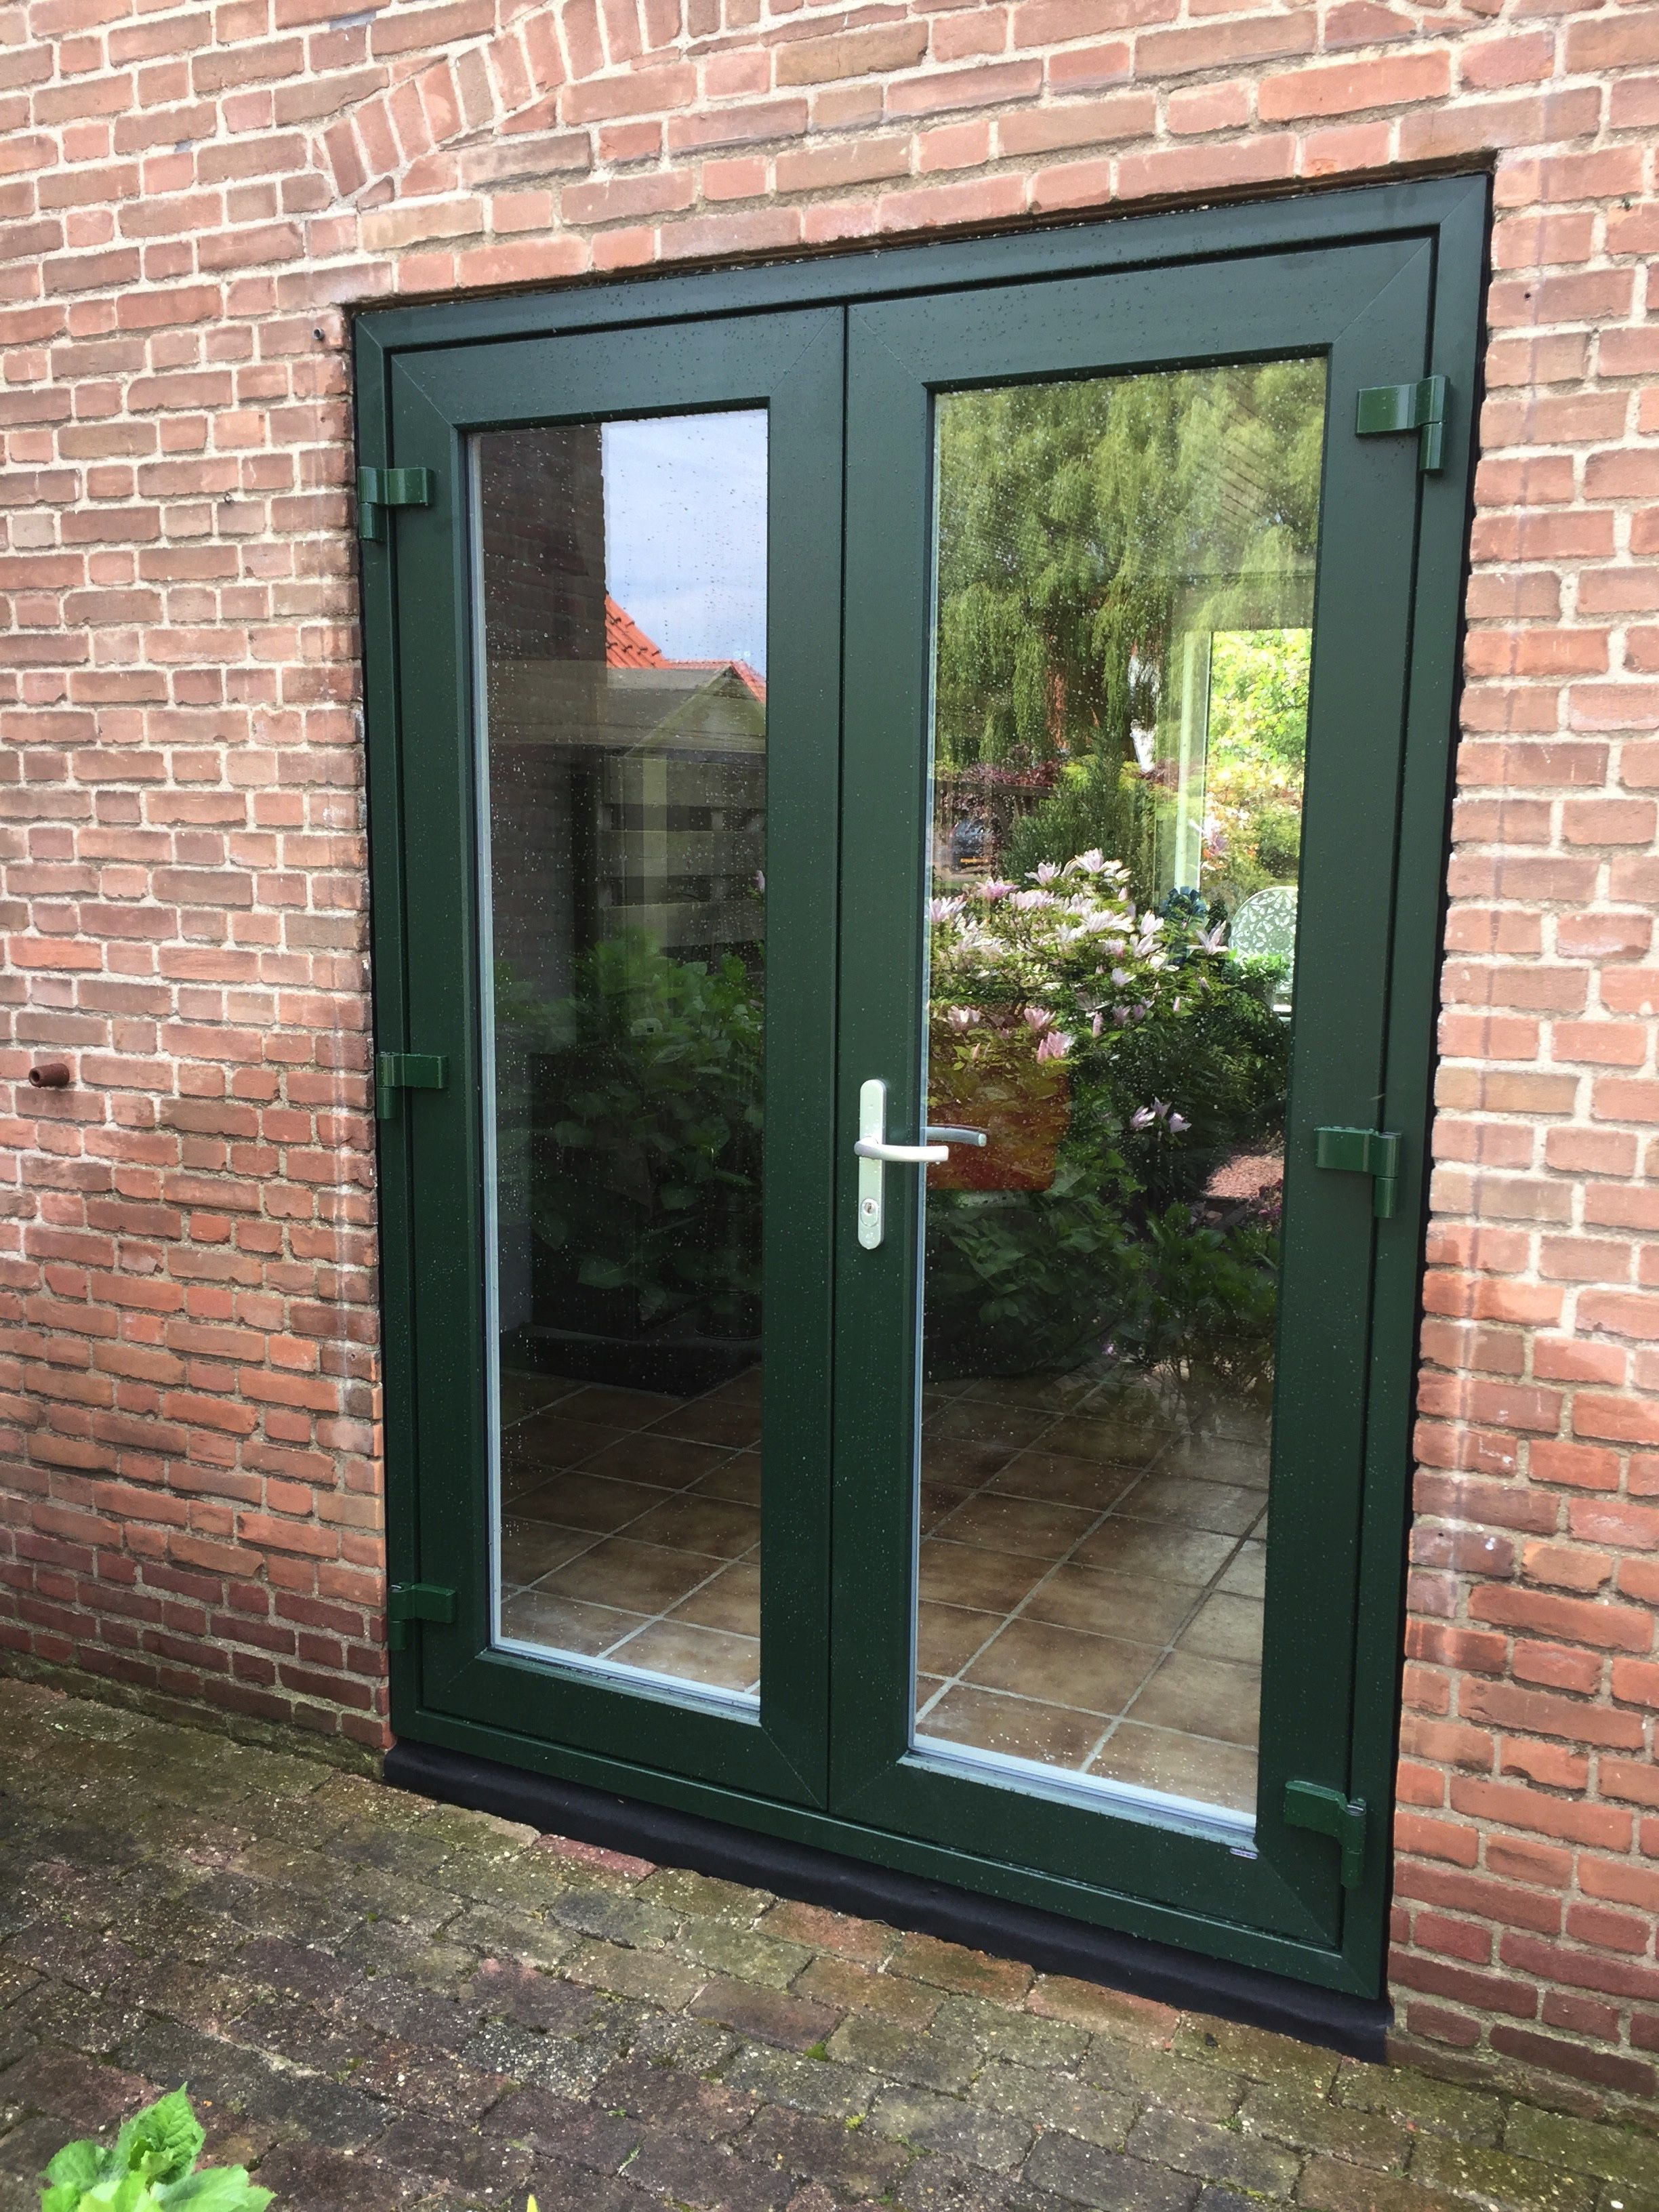 Double Door For The Terrace Dubbele Deur Voor Op Het Terras Double Pine Green Plastic Door And A Green Frame With In 2020 Double Doors Green Windows Types Of Doors